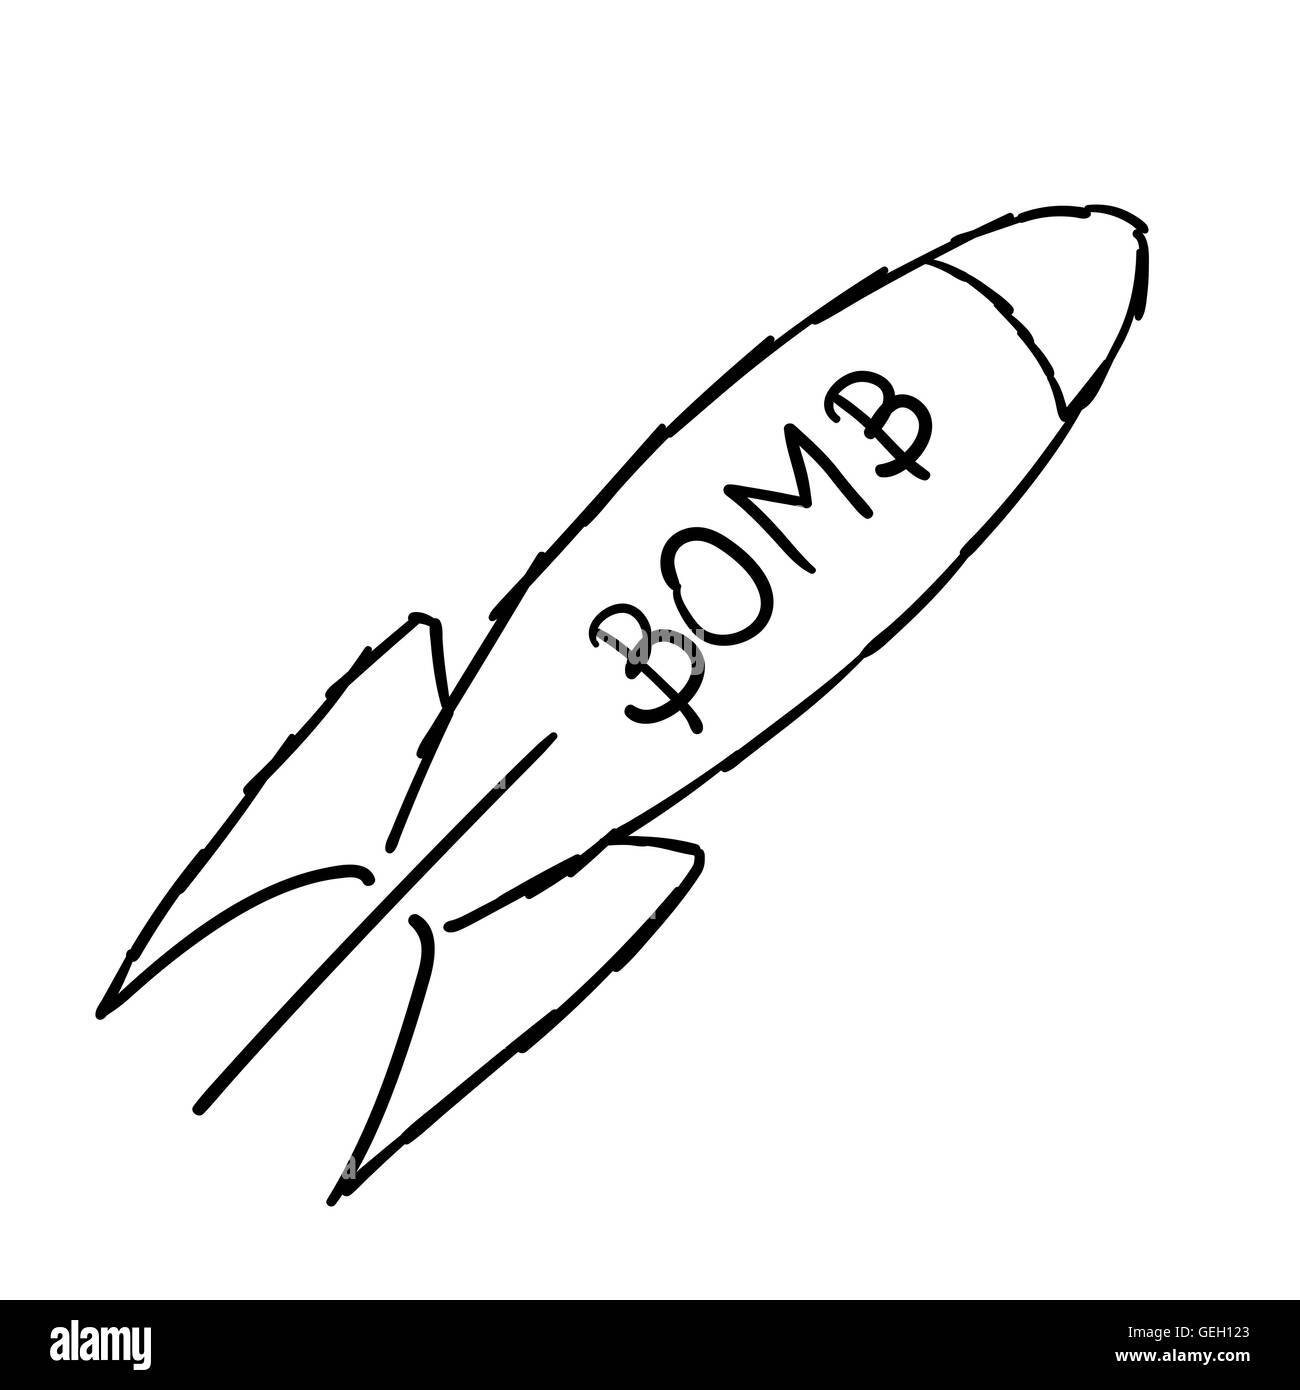 Doodle style bomb illustration in vector format. - Stock Vector